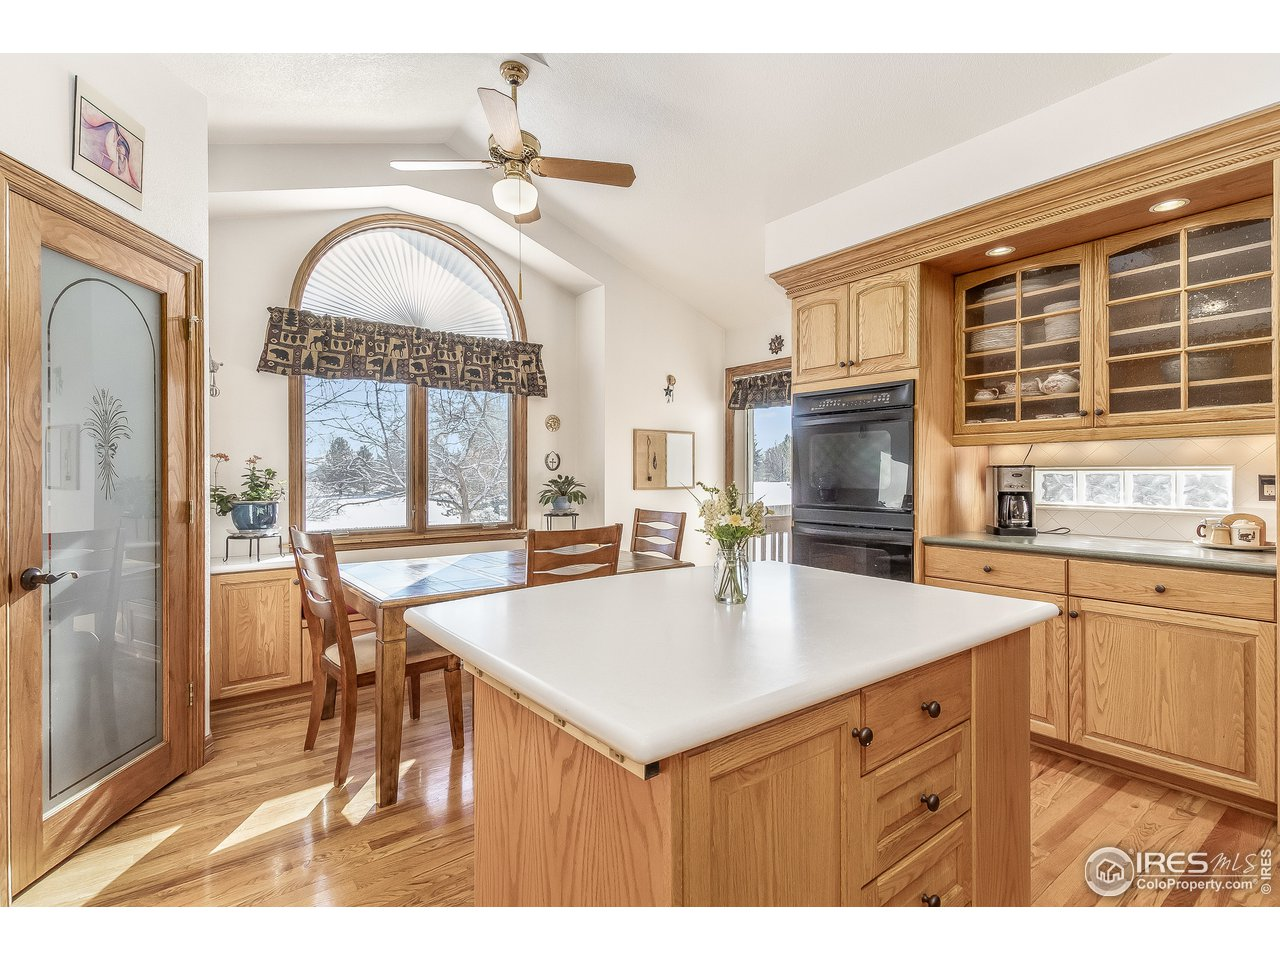 kitchen center island and dining area